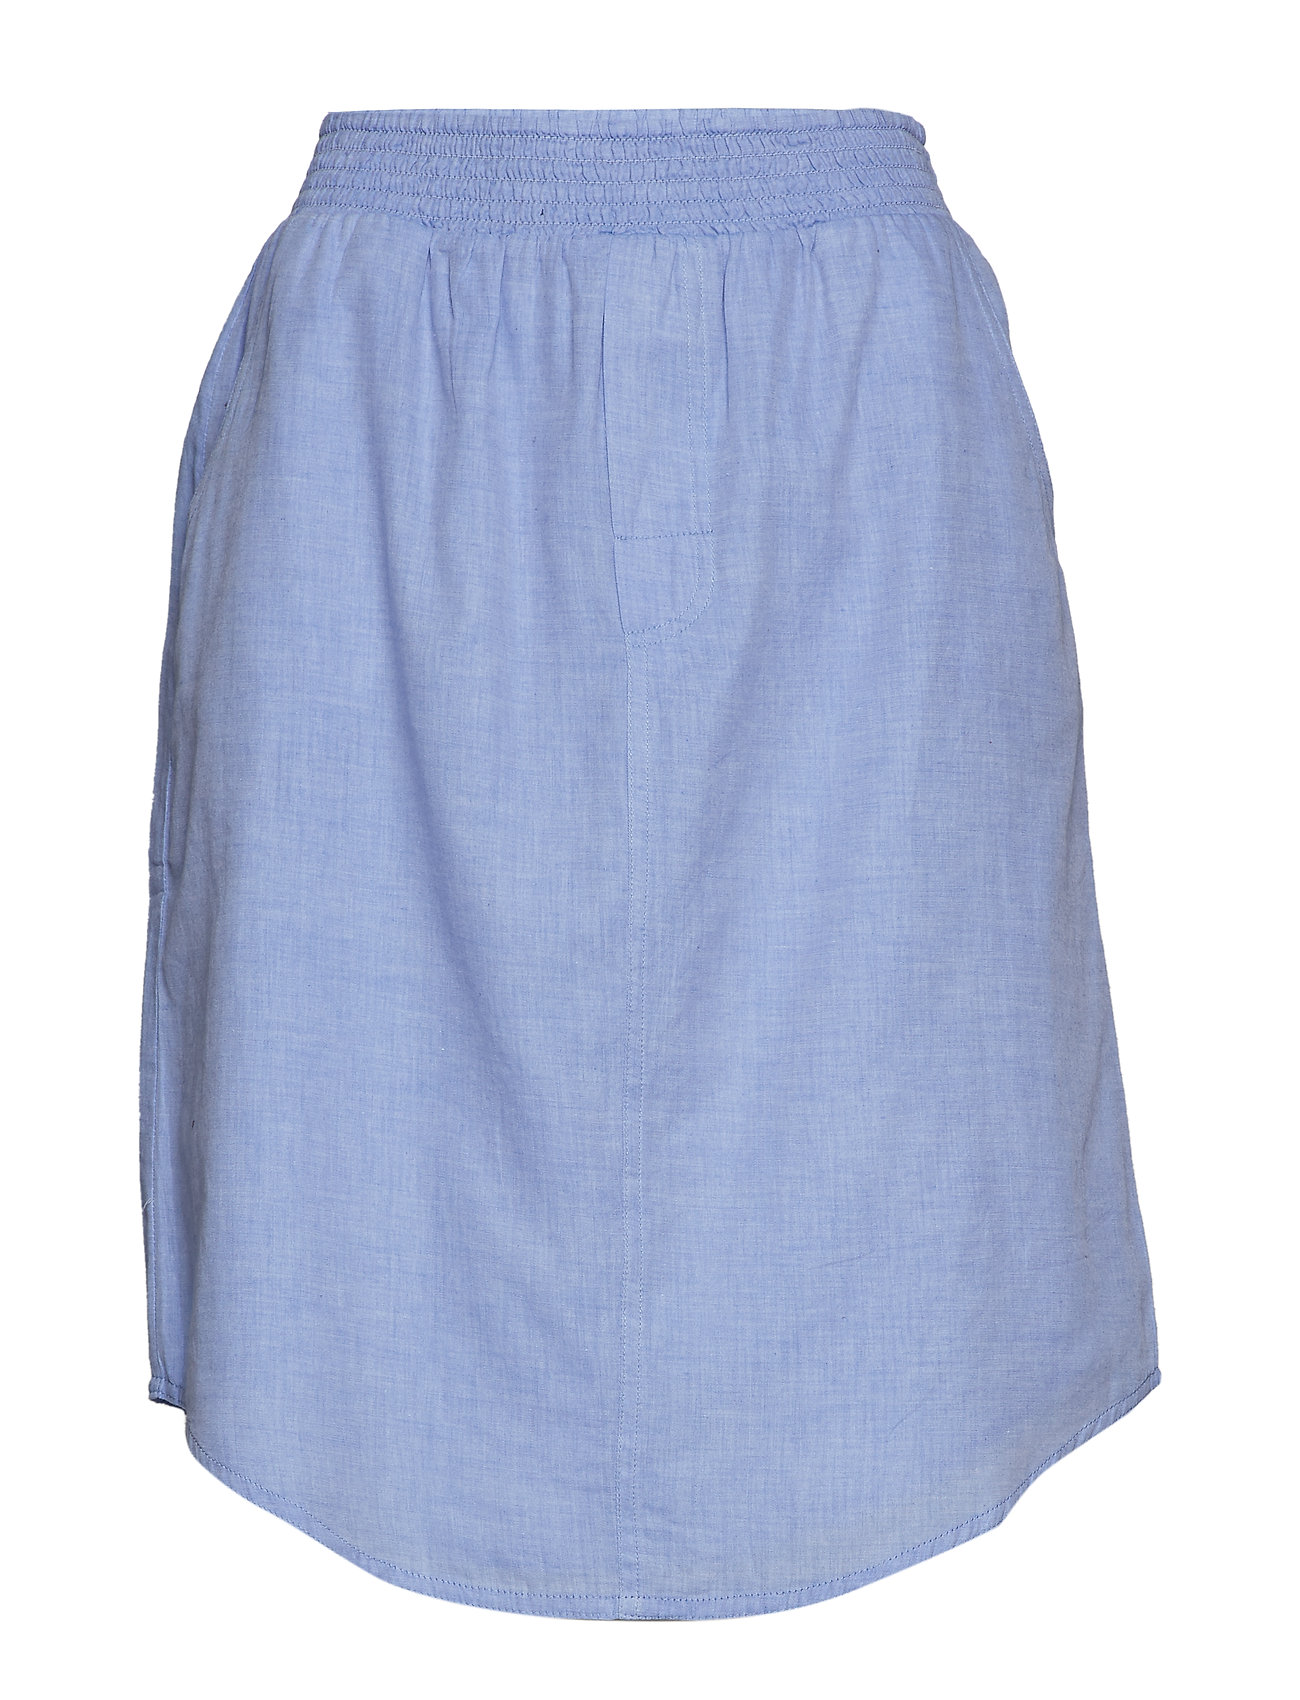 Moshi Moshi Mind boxer skirt chambray - LIGHT BLUE CHAMBRAY